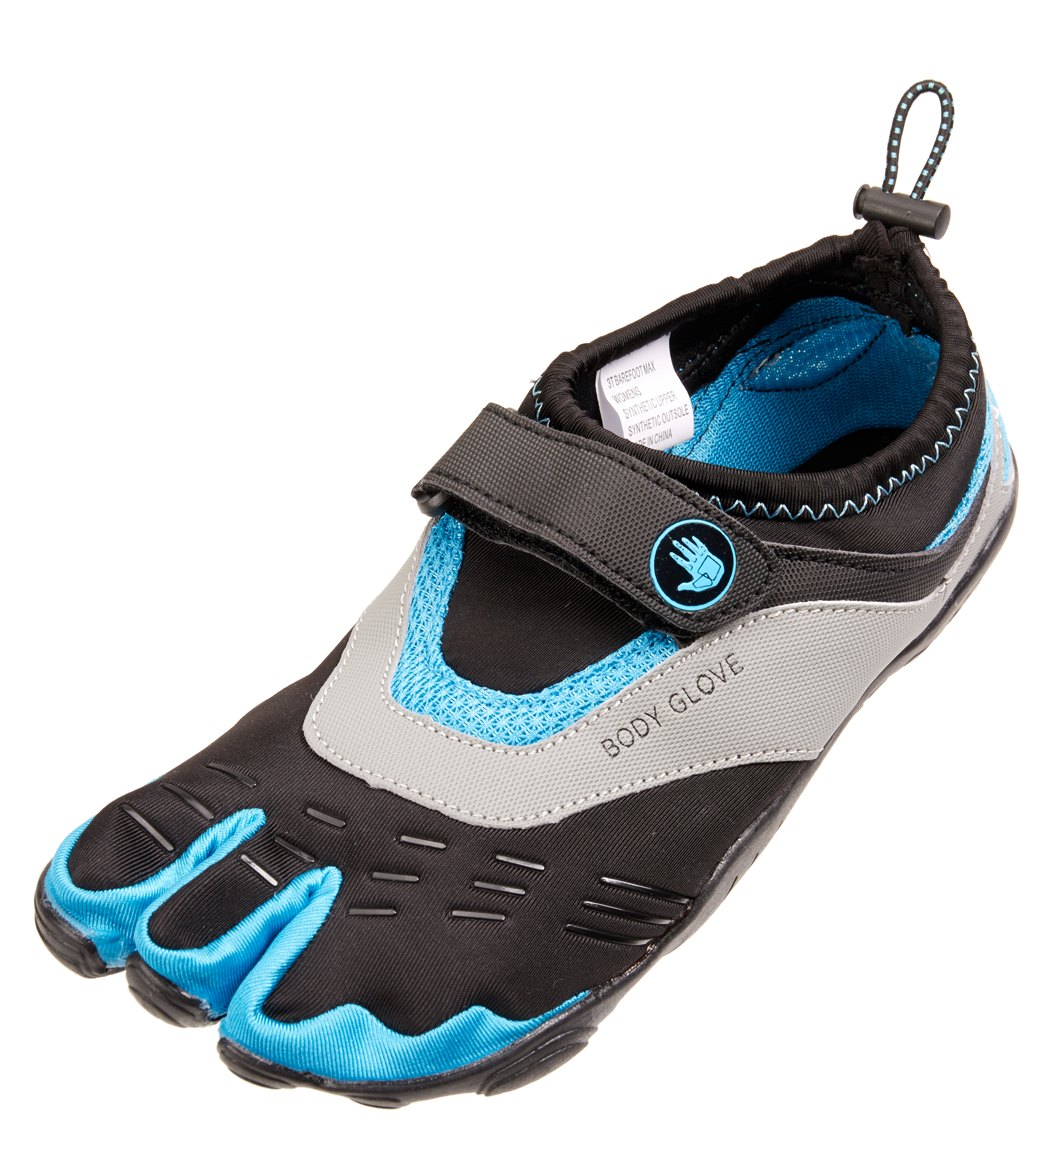 Body Glove Women's 3T Barefoot Max Water Shoe at SwimOutlet.com - Free  Shipping